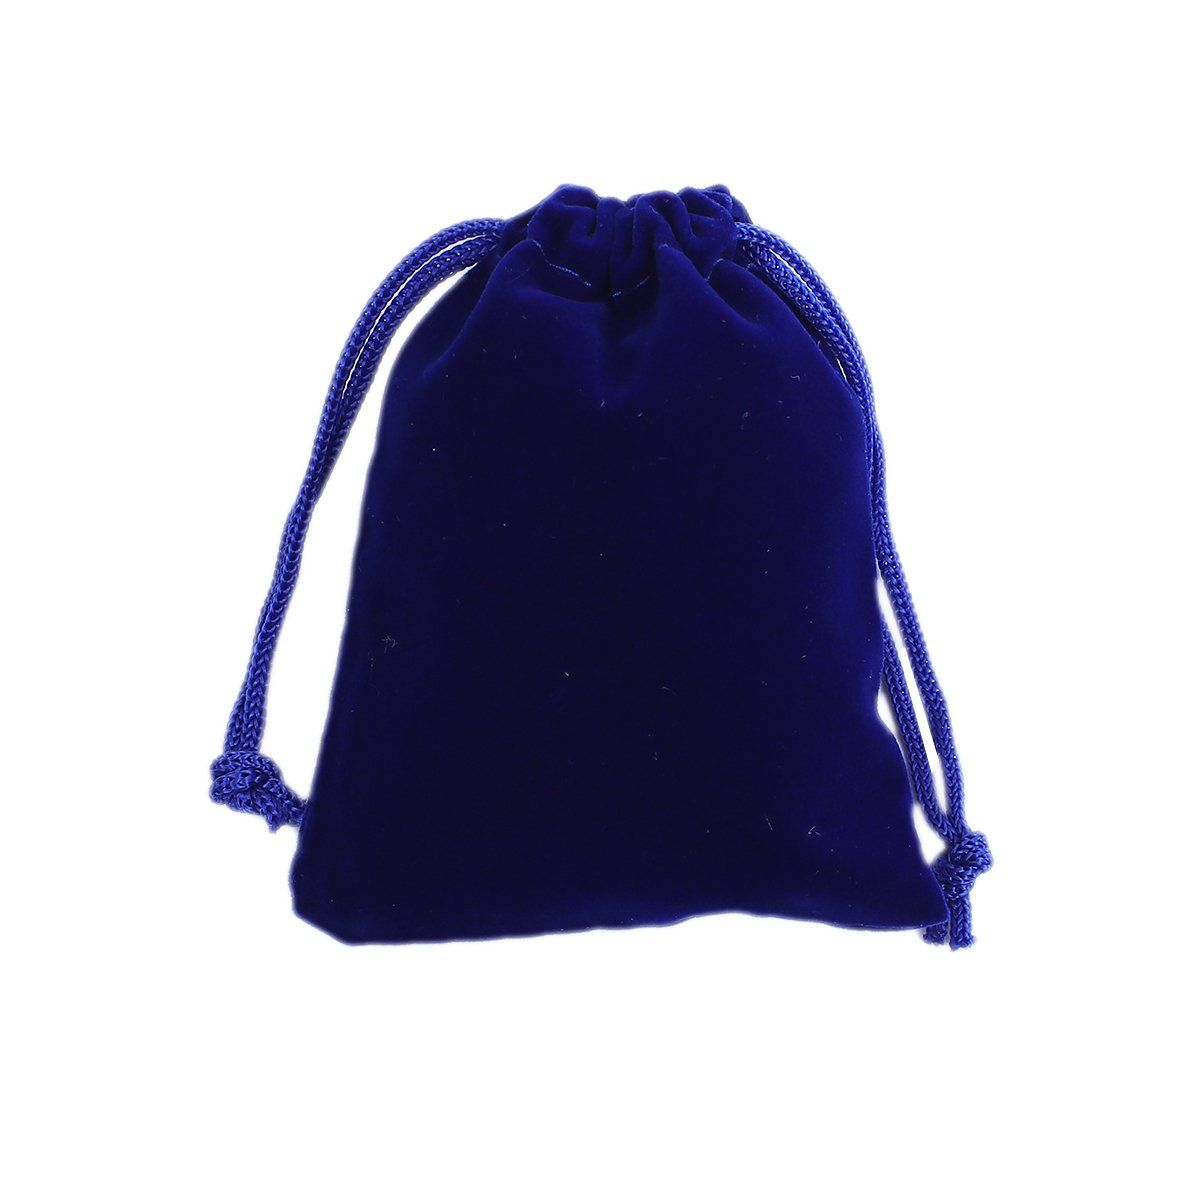 "10 x Velvet Drawstring Bags Jewellery Gift Bag 7 x5/"" Large"